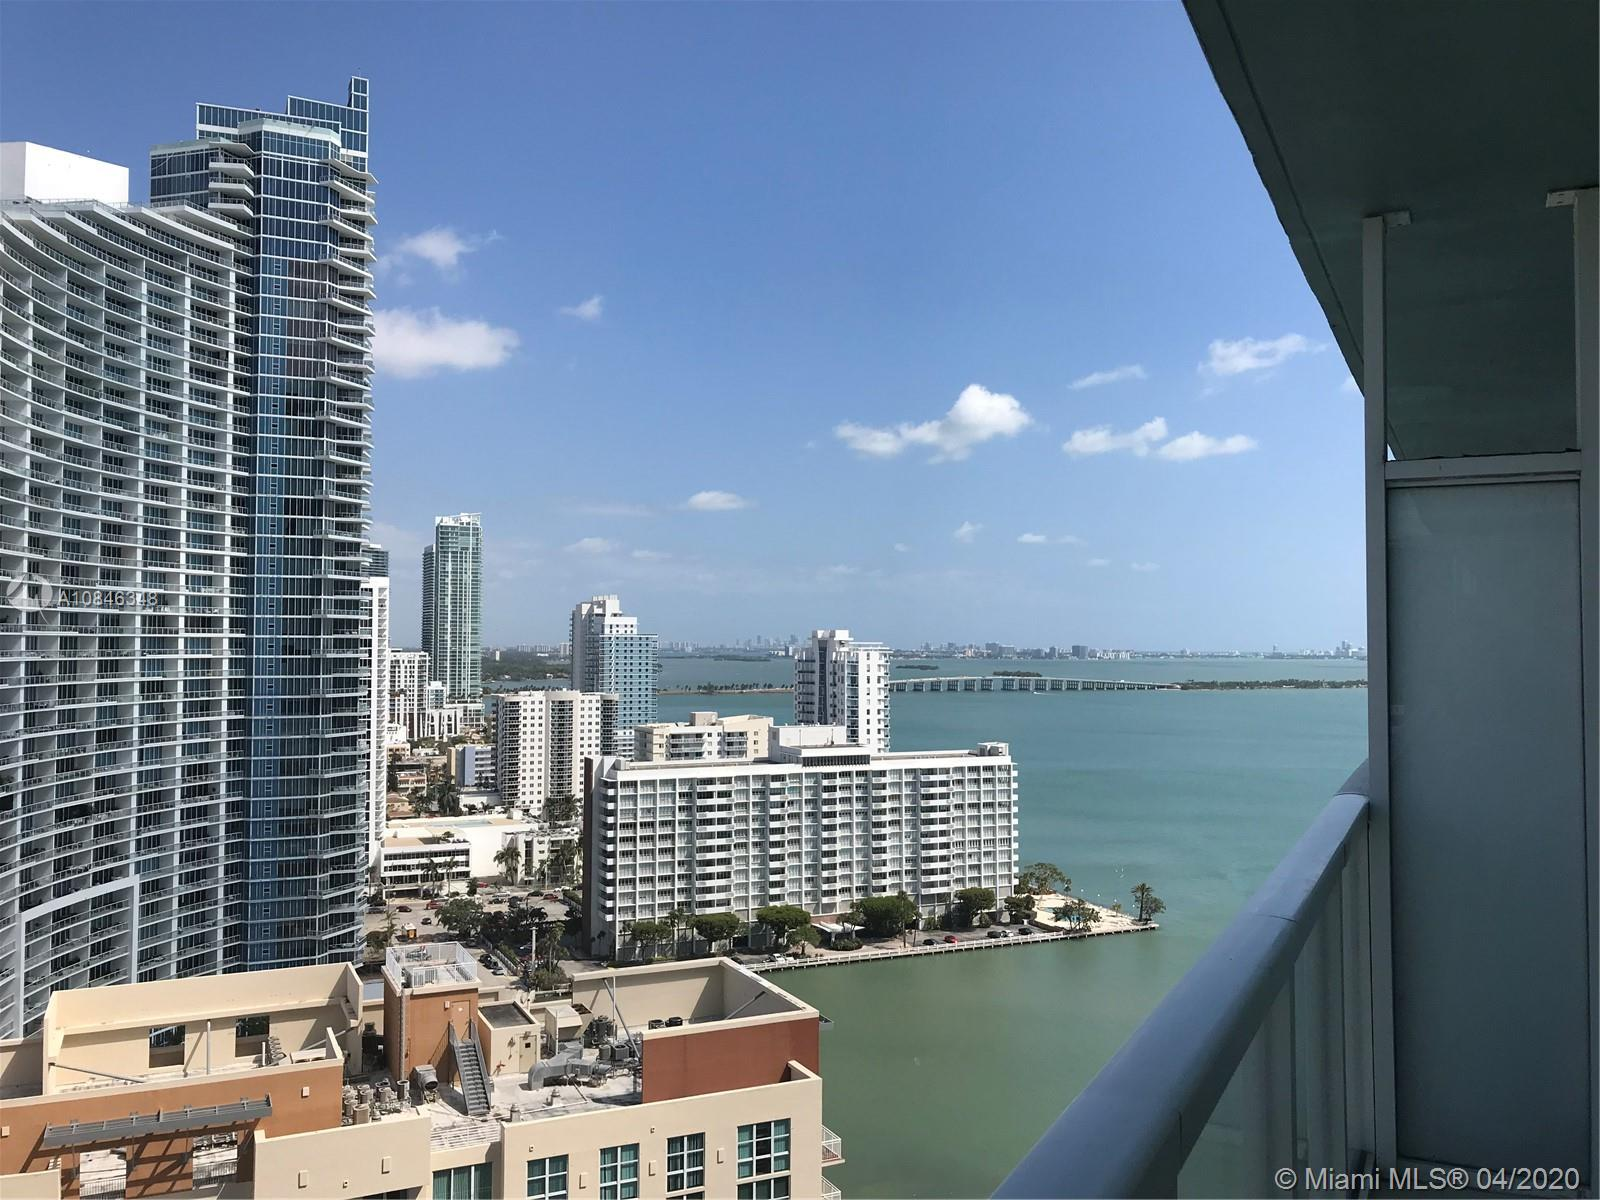 SPECTACULAR DIRECT EAST BAY VIEW FROM THE 23rd FLOOR, ONE OF THE BEST LINES IN THE BUILDING, 2 BED/2.5 BATH WITH INCREDIBLE VIEWS OF SOUTH BEACH, MIAMI SKYLINE & CITY VIEWS. FLOOR TO CEILING WINDOWS, MARBLE THROUGHOUT, BEAUTIFUL EUROPEAN STYLE KITCHEN WITH GRANITE COUNTER-TOPS AND STAINLESS STEEL APPLIANCES. RENTED FURNISHED. ENJOY ALL THE AMENITIES THAT THIS BUILDING OFFERS: STATE OF THE ART 2 STORY GYM, 2 POOLS, HUGE ENTERTAINMENT PARTY ROOM WITH BAR AND KITCHEN, SPA SAUNA & STEAM ROOM, MOVIE THEATER, BUSINESS CENTER.